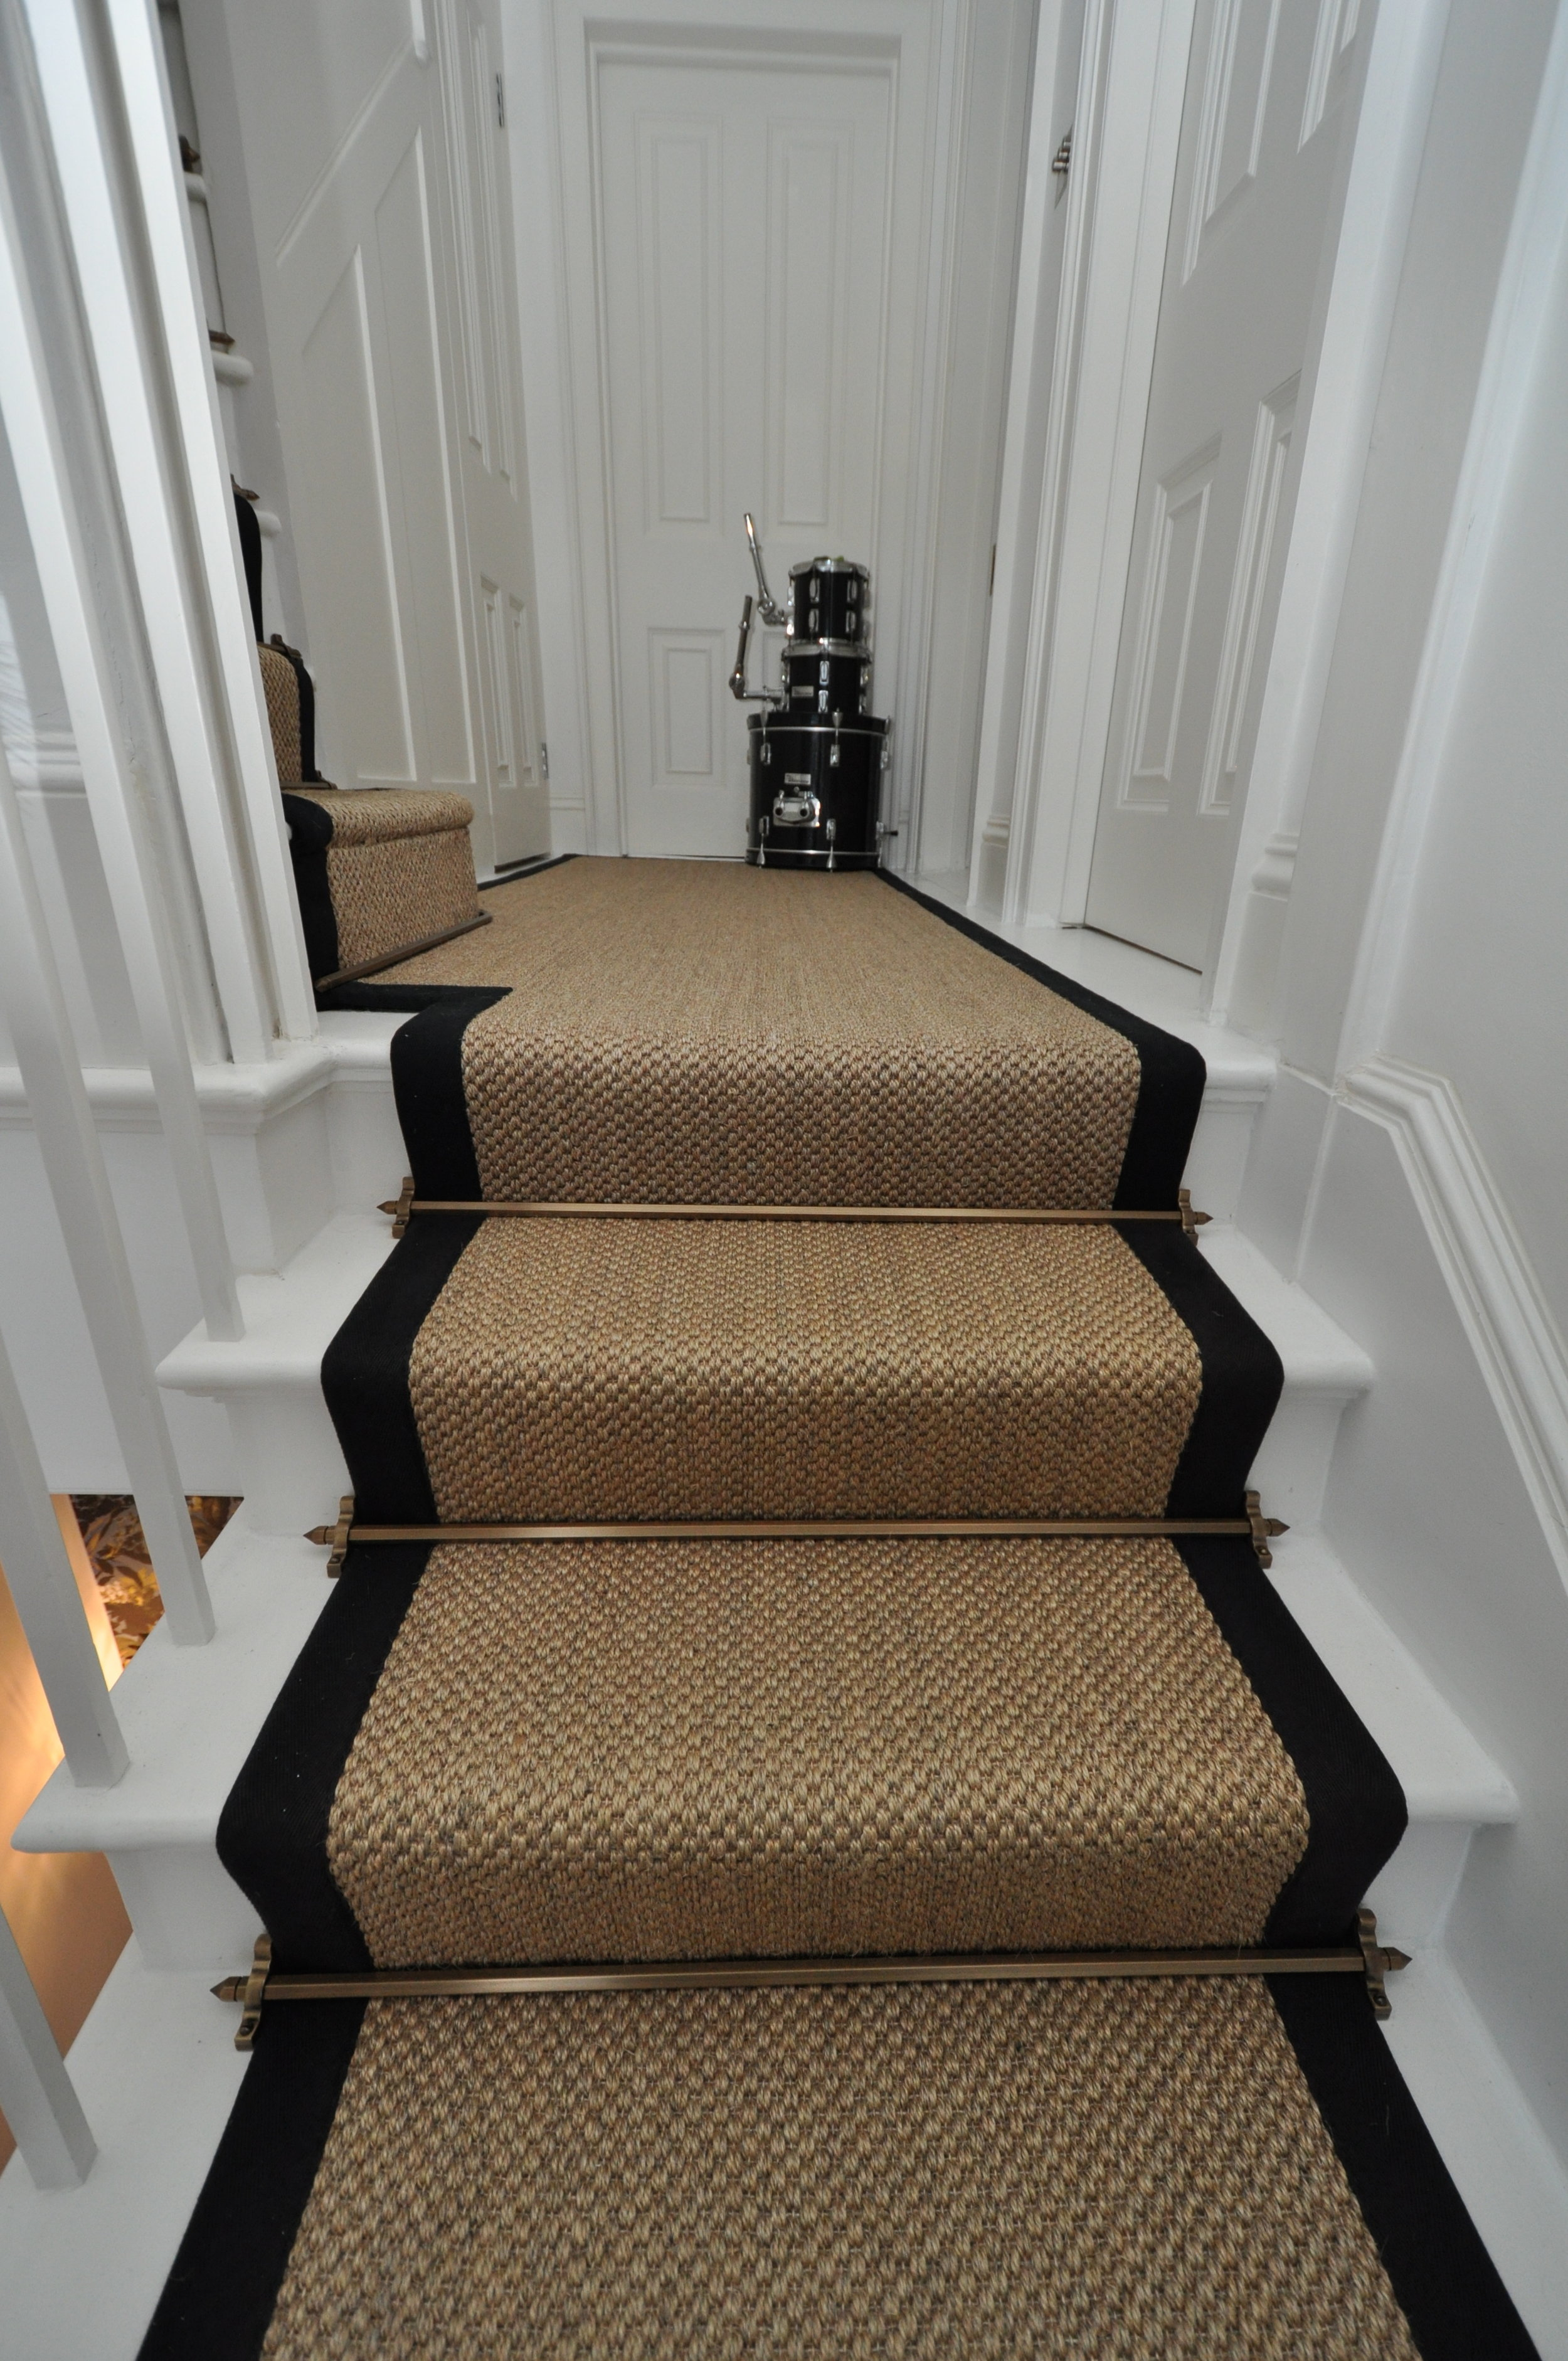 flatweave-stair-runners-london-bowloom-carpet-geometric-off-the-loom-DSC_1444.jpg